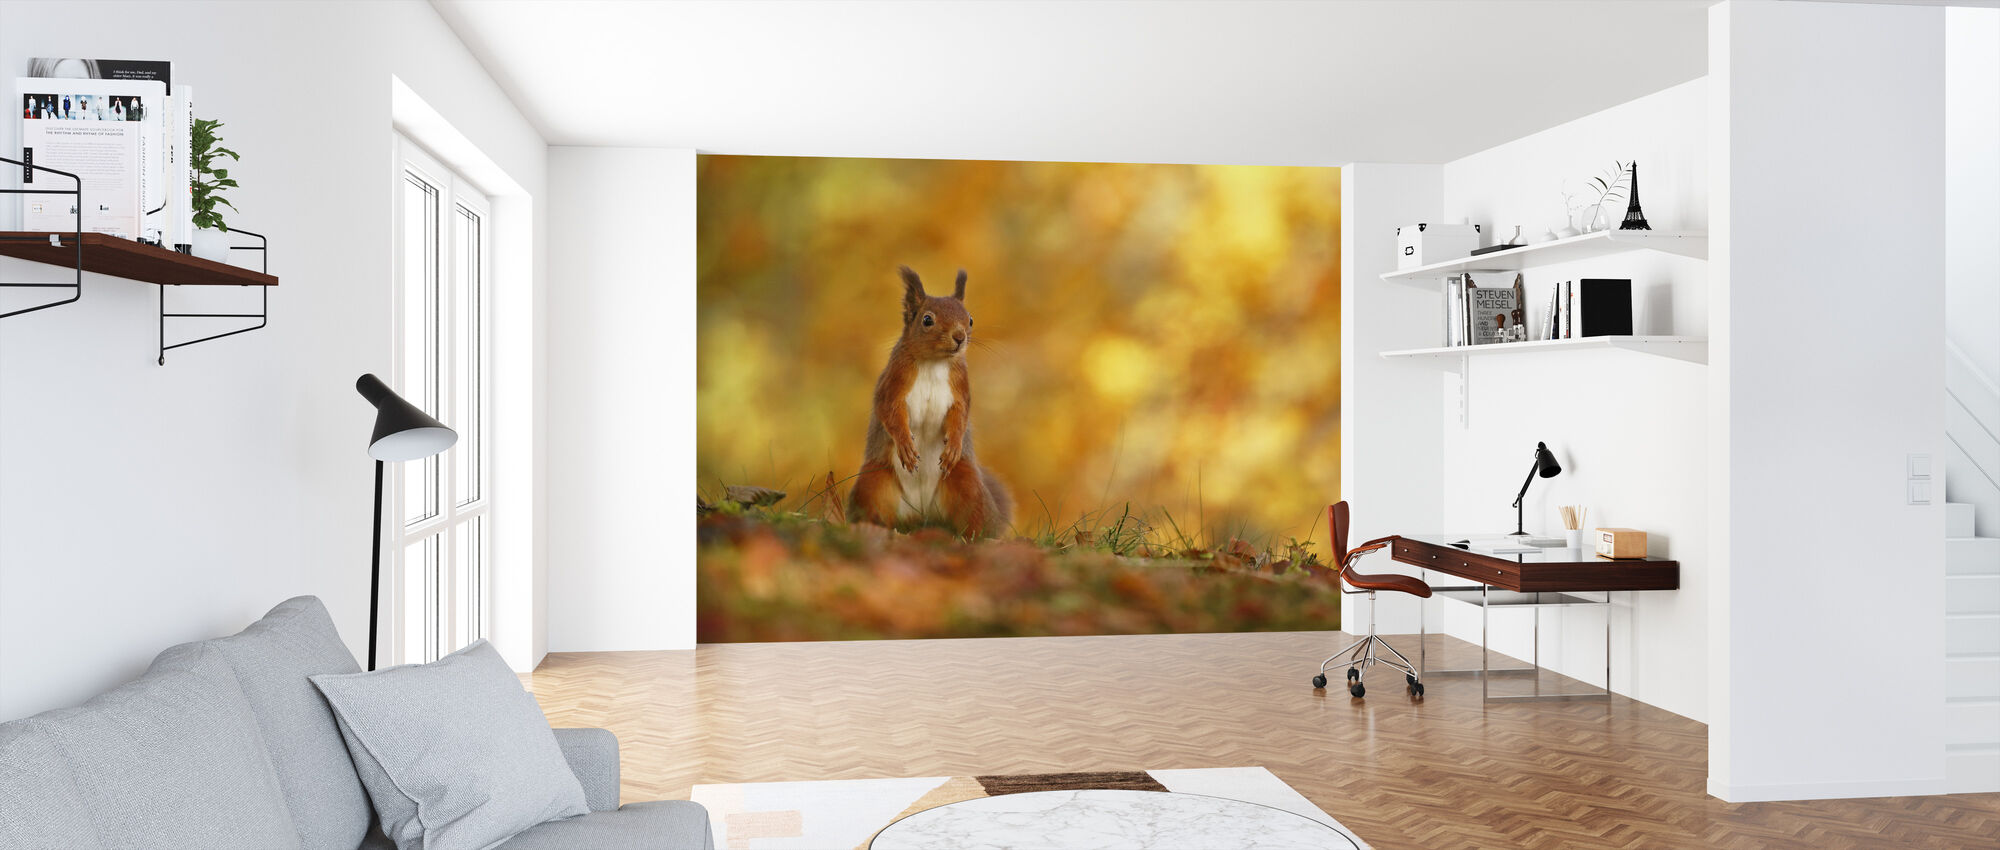 Red Squirrel on Forest Floor - Wallpaper - Office